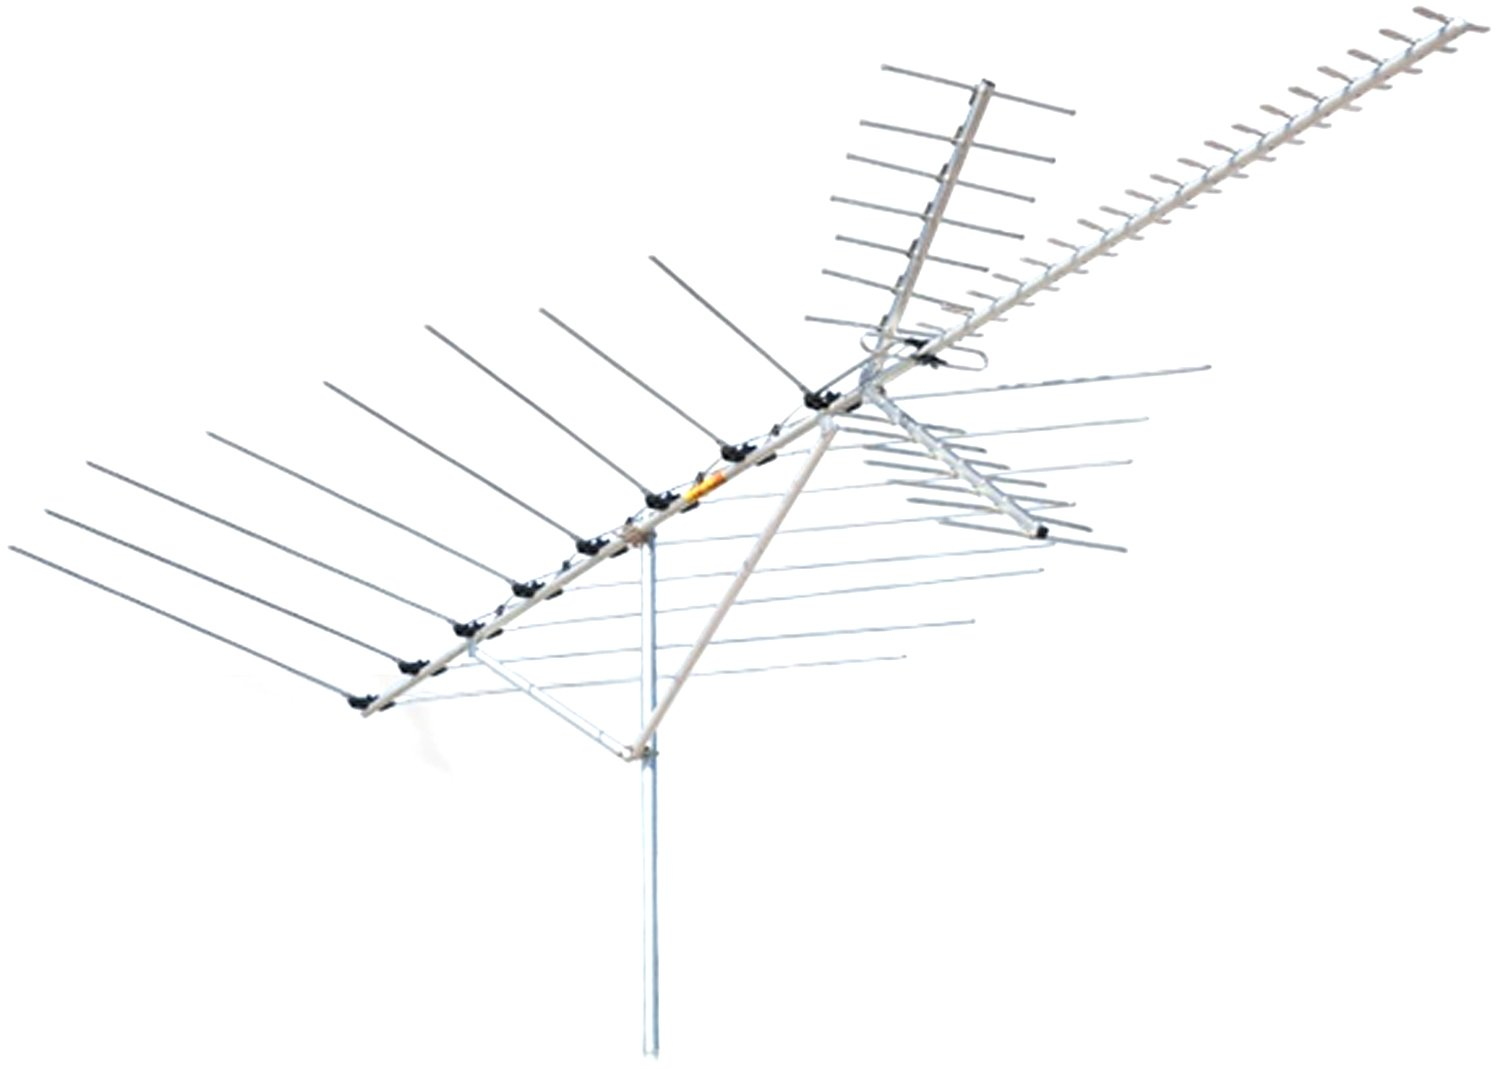 Channel Master Cm 3020 Long Range Vhf Uhf Fm And Hdtv Antenna Rotor Wiring On Diagram Home Audio Theater